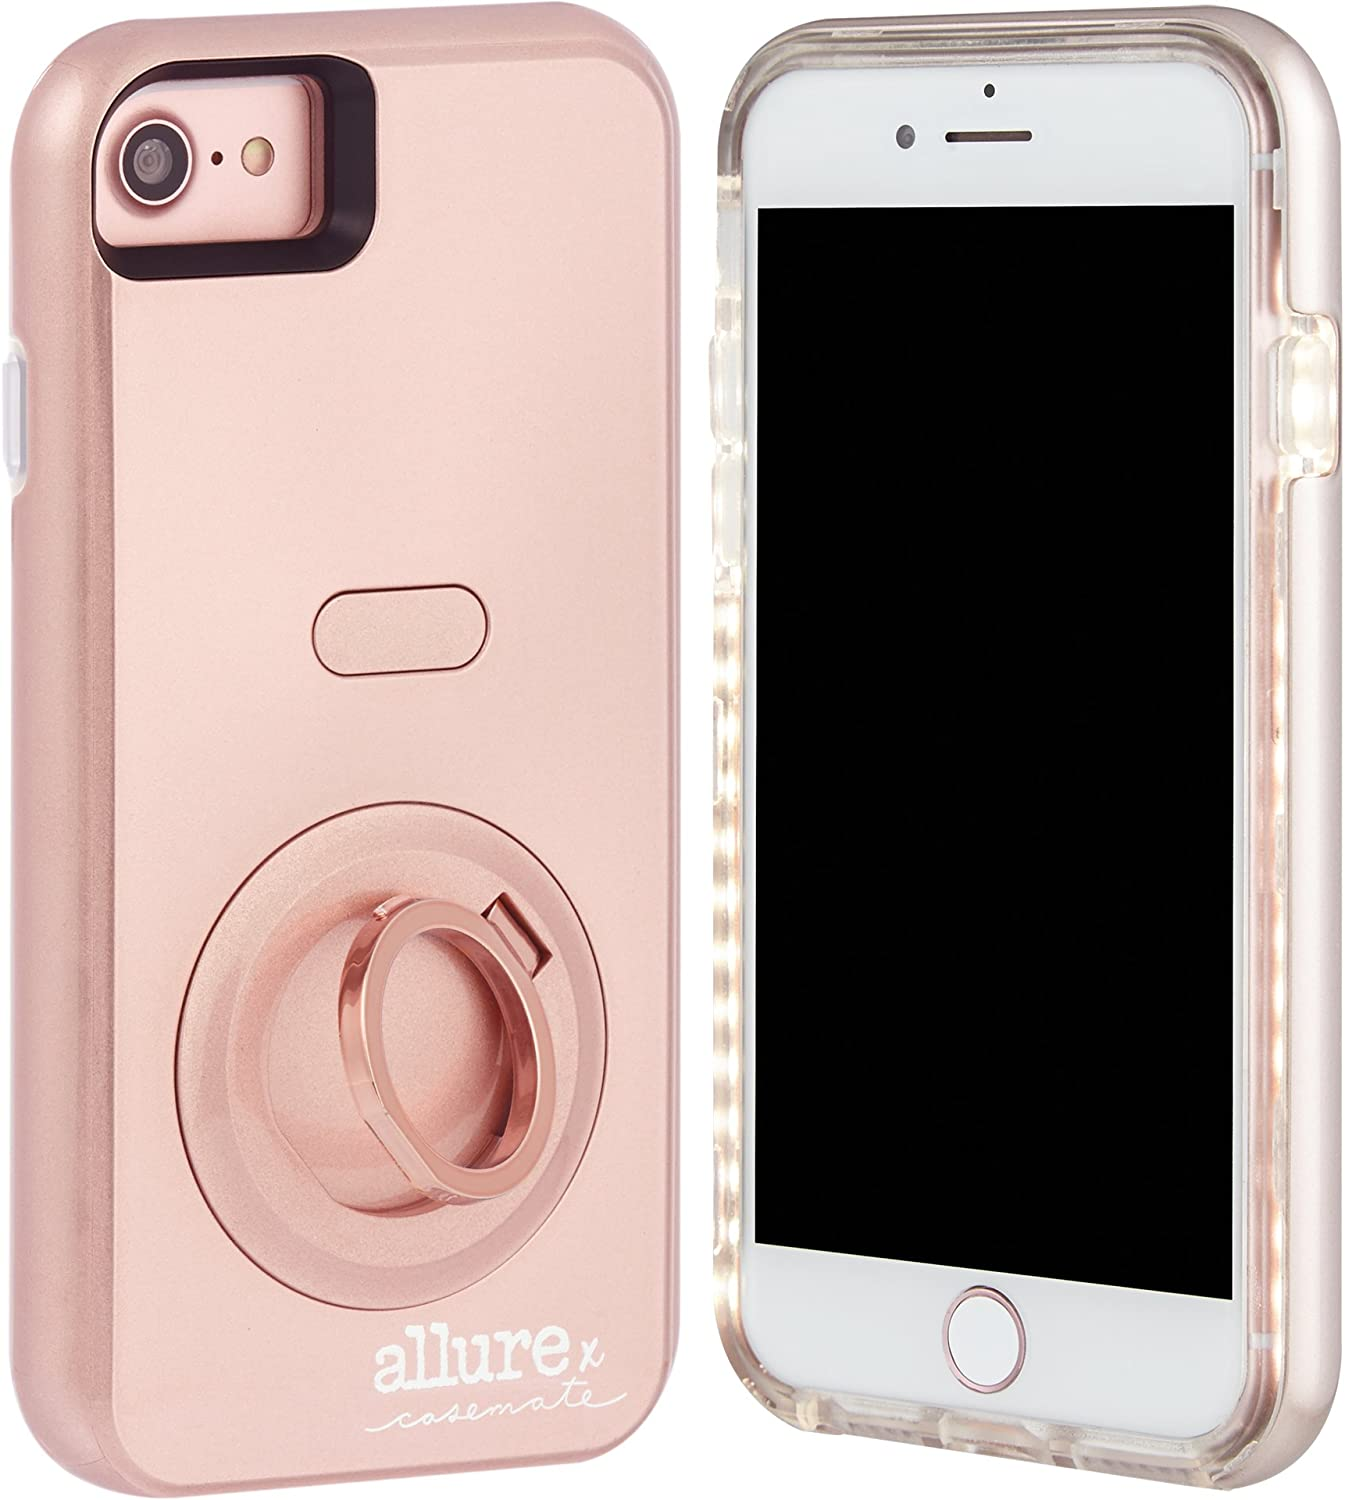 Case-Mate iPhone 7 Plus Case - Allure Selfie - LED Selfie Light Illuminated Cell Phone Case - Rose Gold (Compatible with iPhone 6/6S Plus )